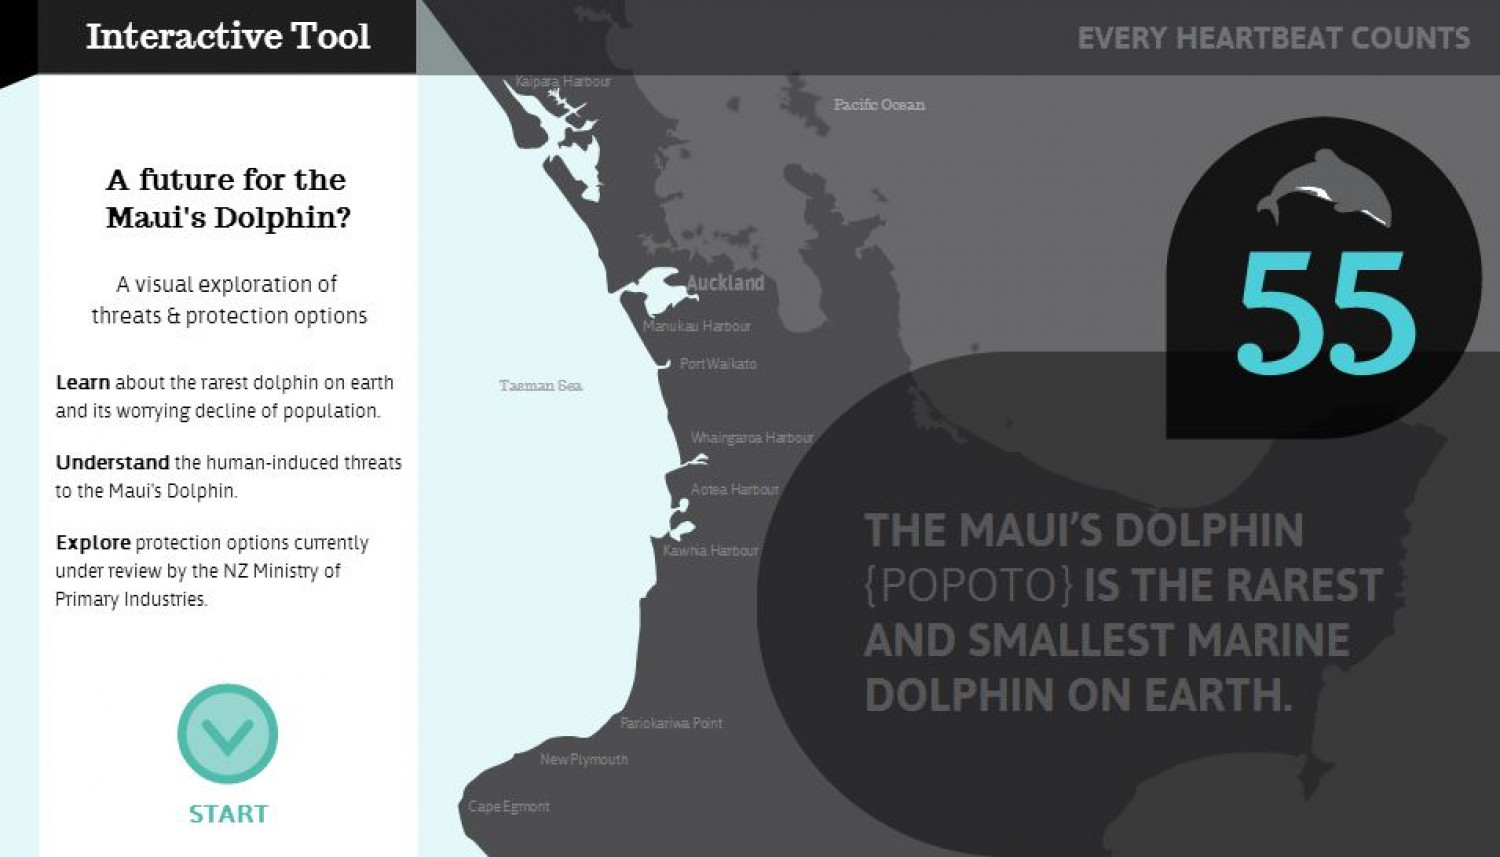 A future for the Maui's Dolphin? Infographic